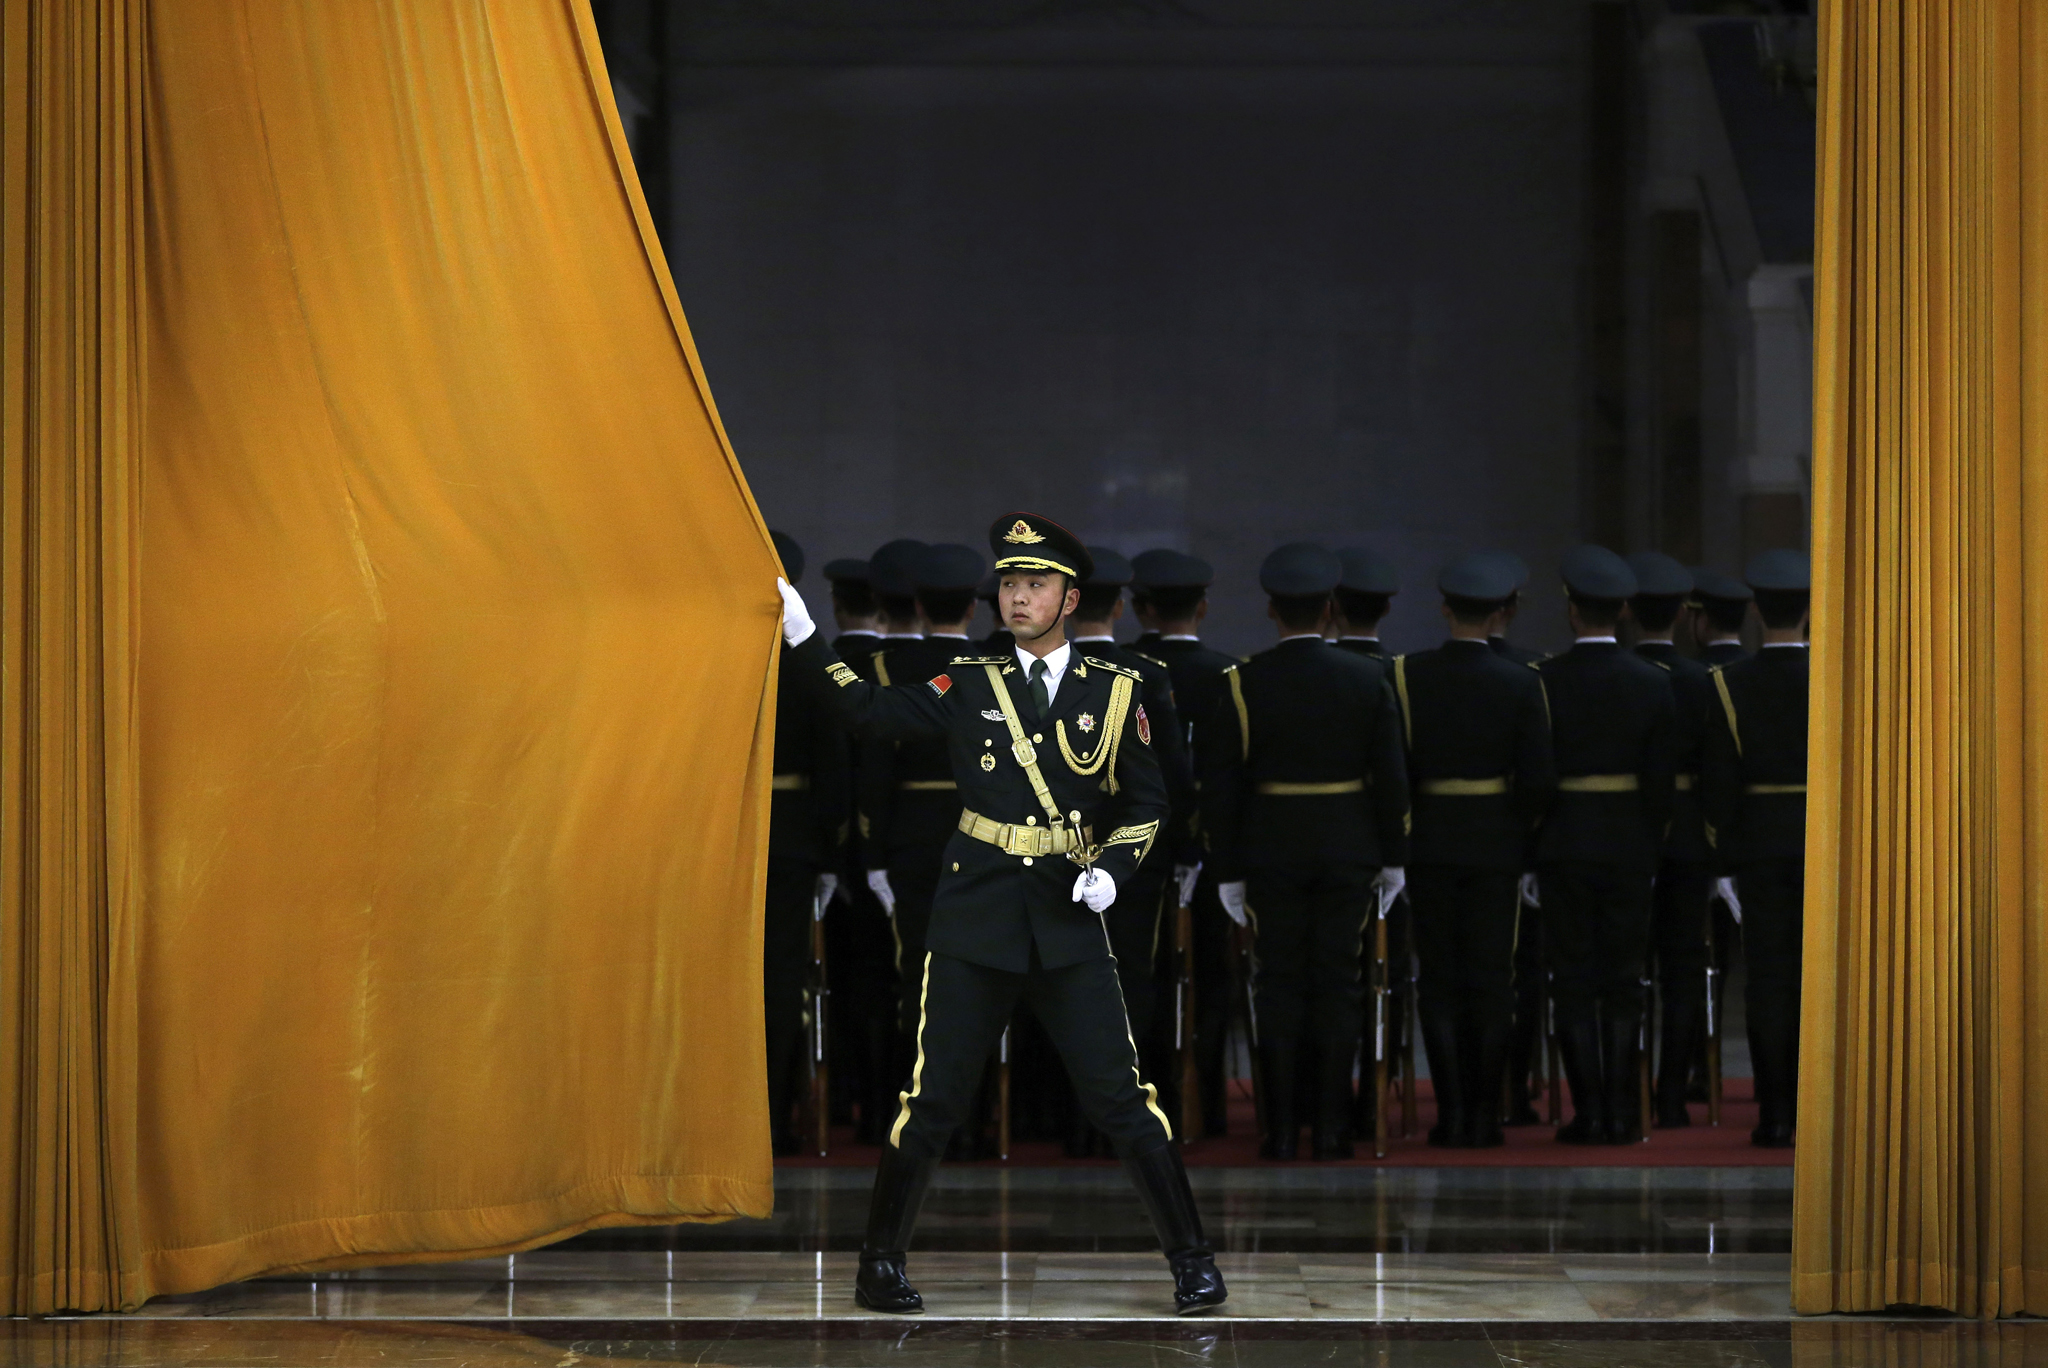 A Chinese People's Liberation Army soldier closes a curtain after members of honor guard rehearse for a welcome ceremony held by Chinese President Xi Jinping for visiting Egyptian President Abdel-Fattah el-Sissi at the Great Hall of the People in Beijing, China Tuesday, Dec. 23, 2014